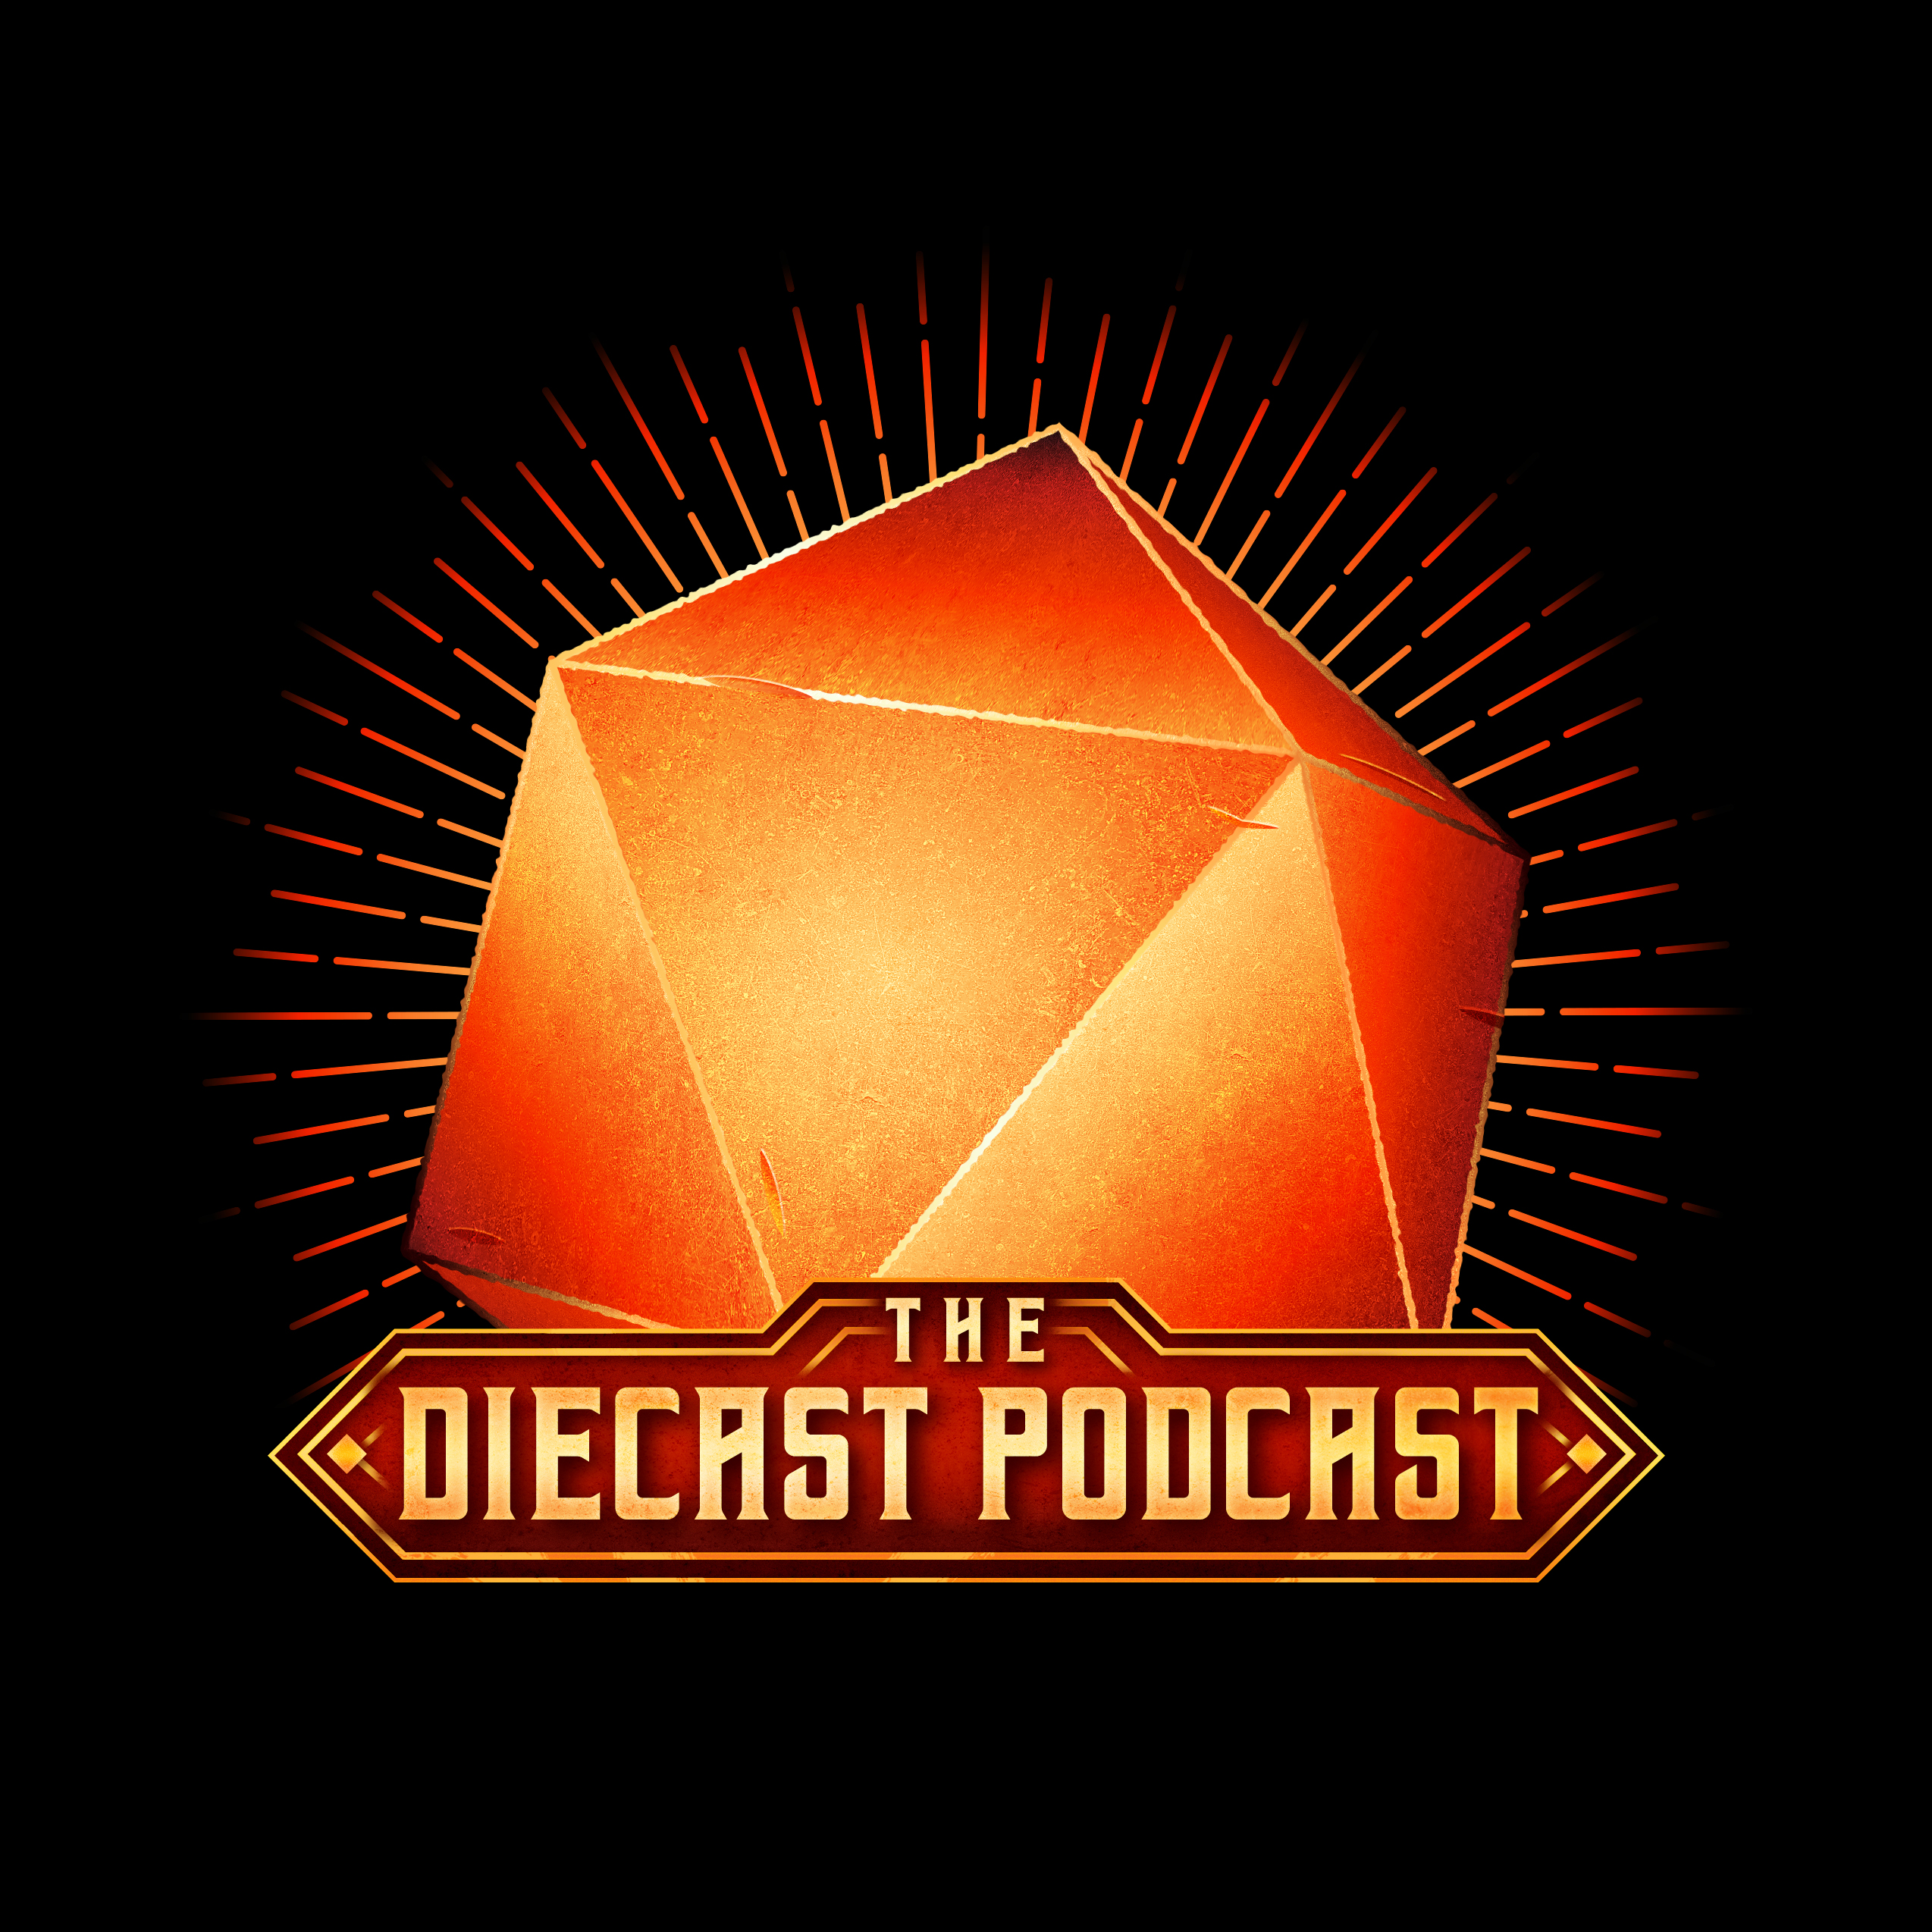 The Diecast Podcast